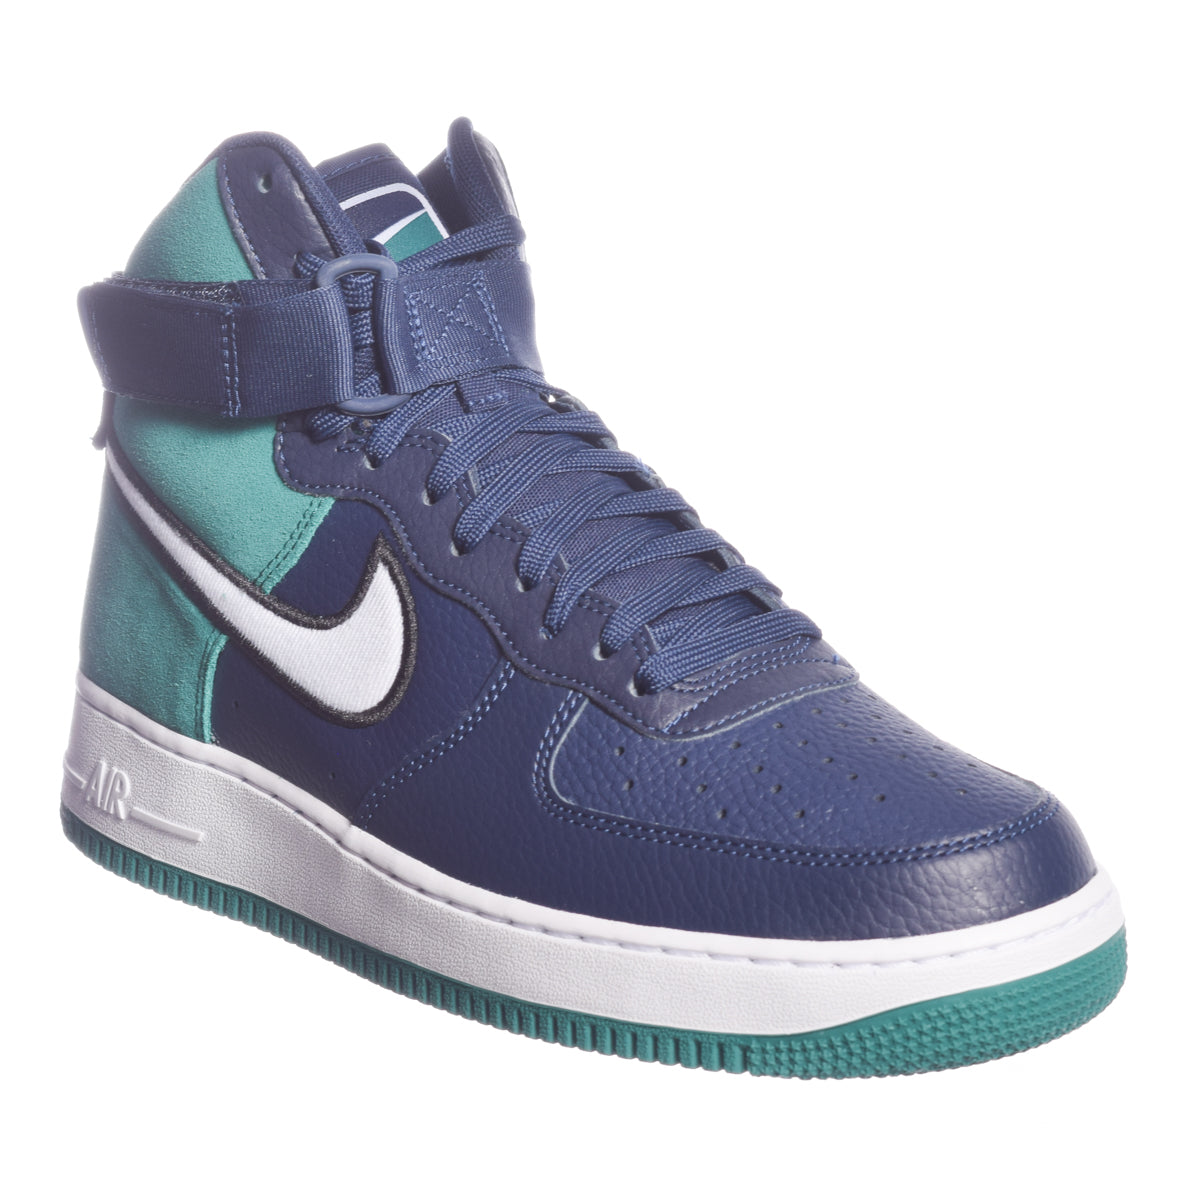 Force 1 Navygreen Nike High Lv8 Air '07 TFKcl1J